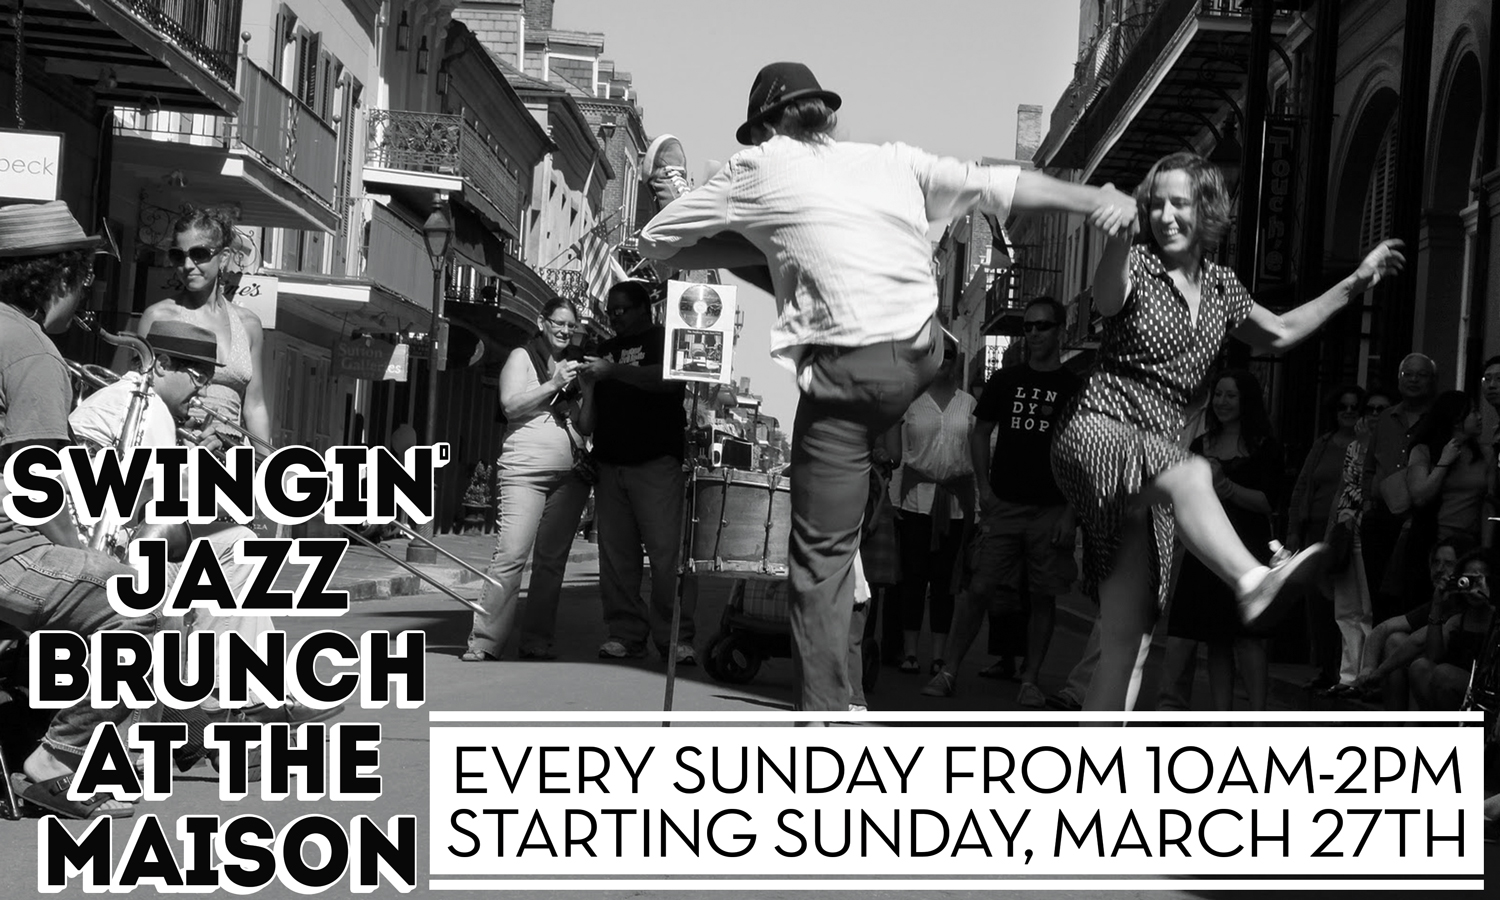 Swingin' Jazz Brunch at The Maison on Frenchmen Street in New Orleans every Sunday at 10am